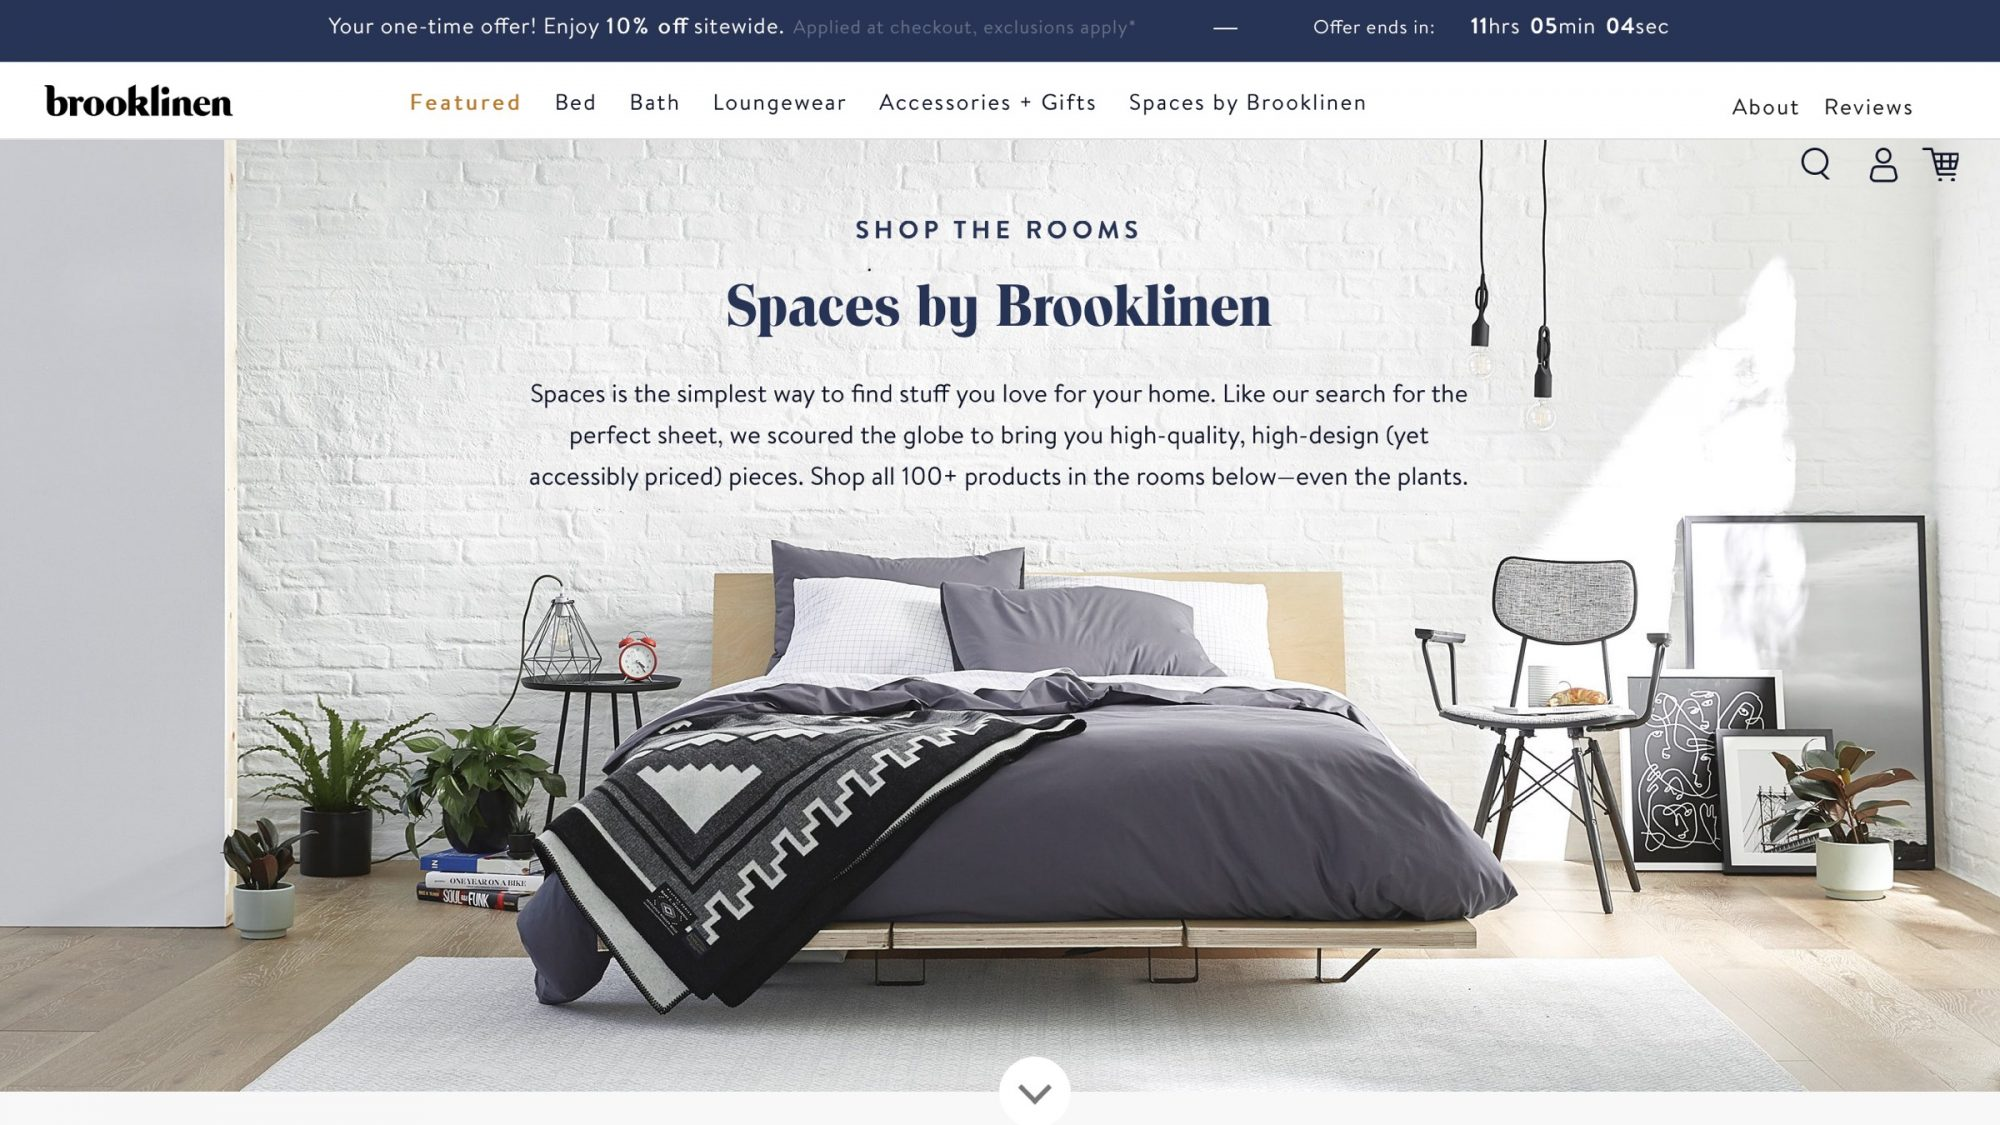 Spaces by Brooklinen